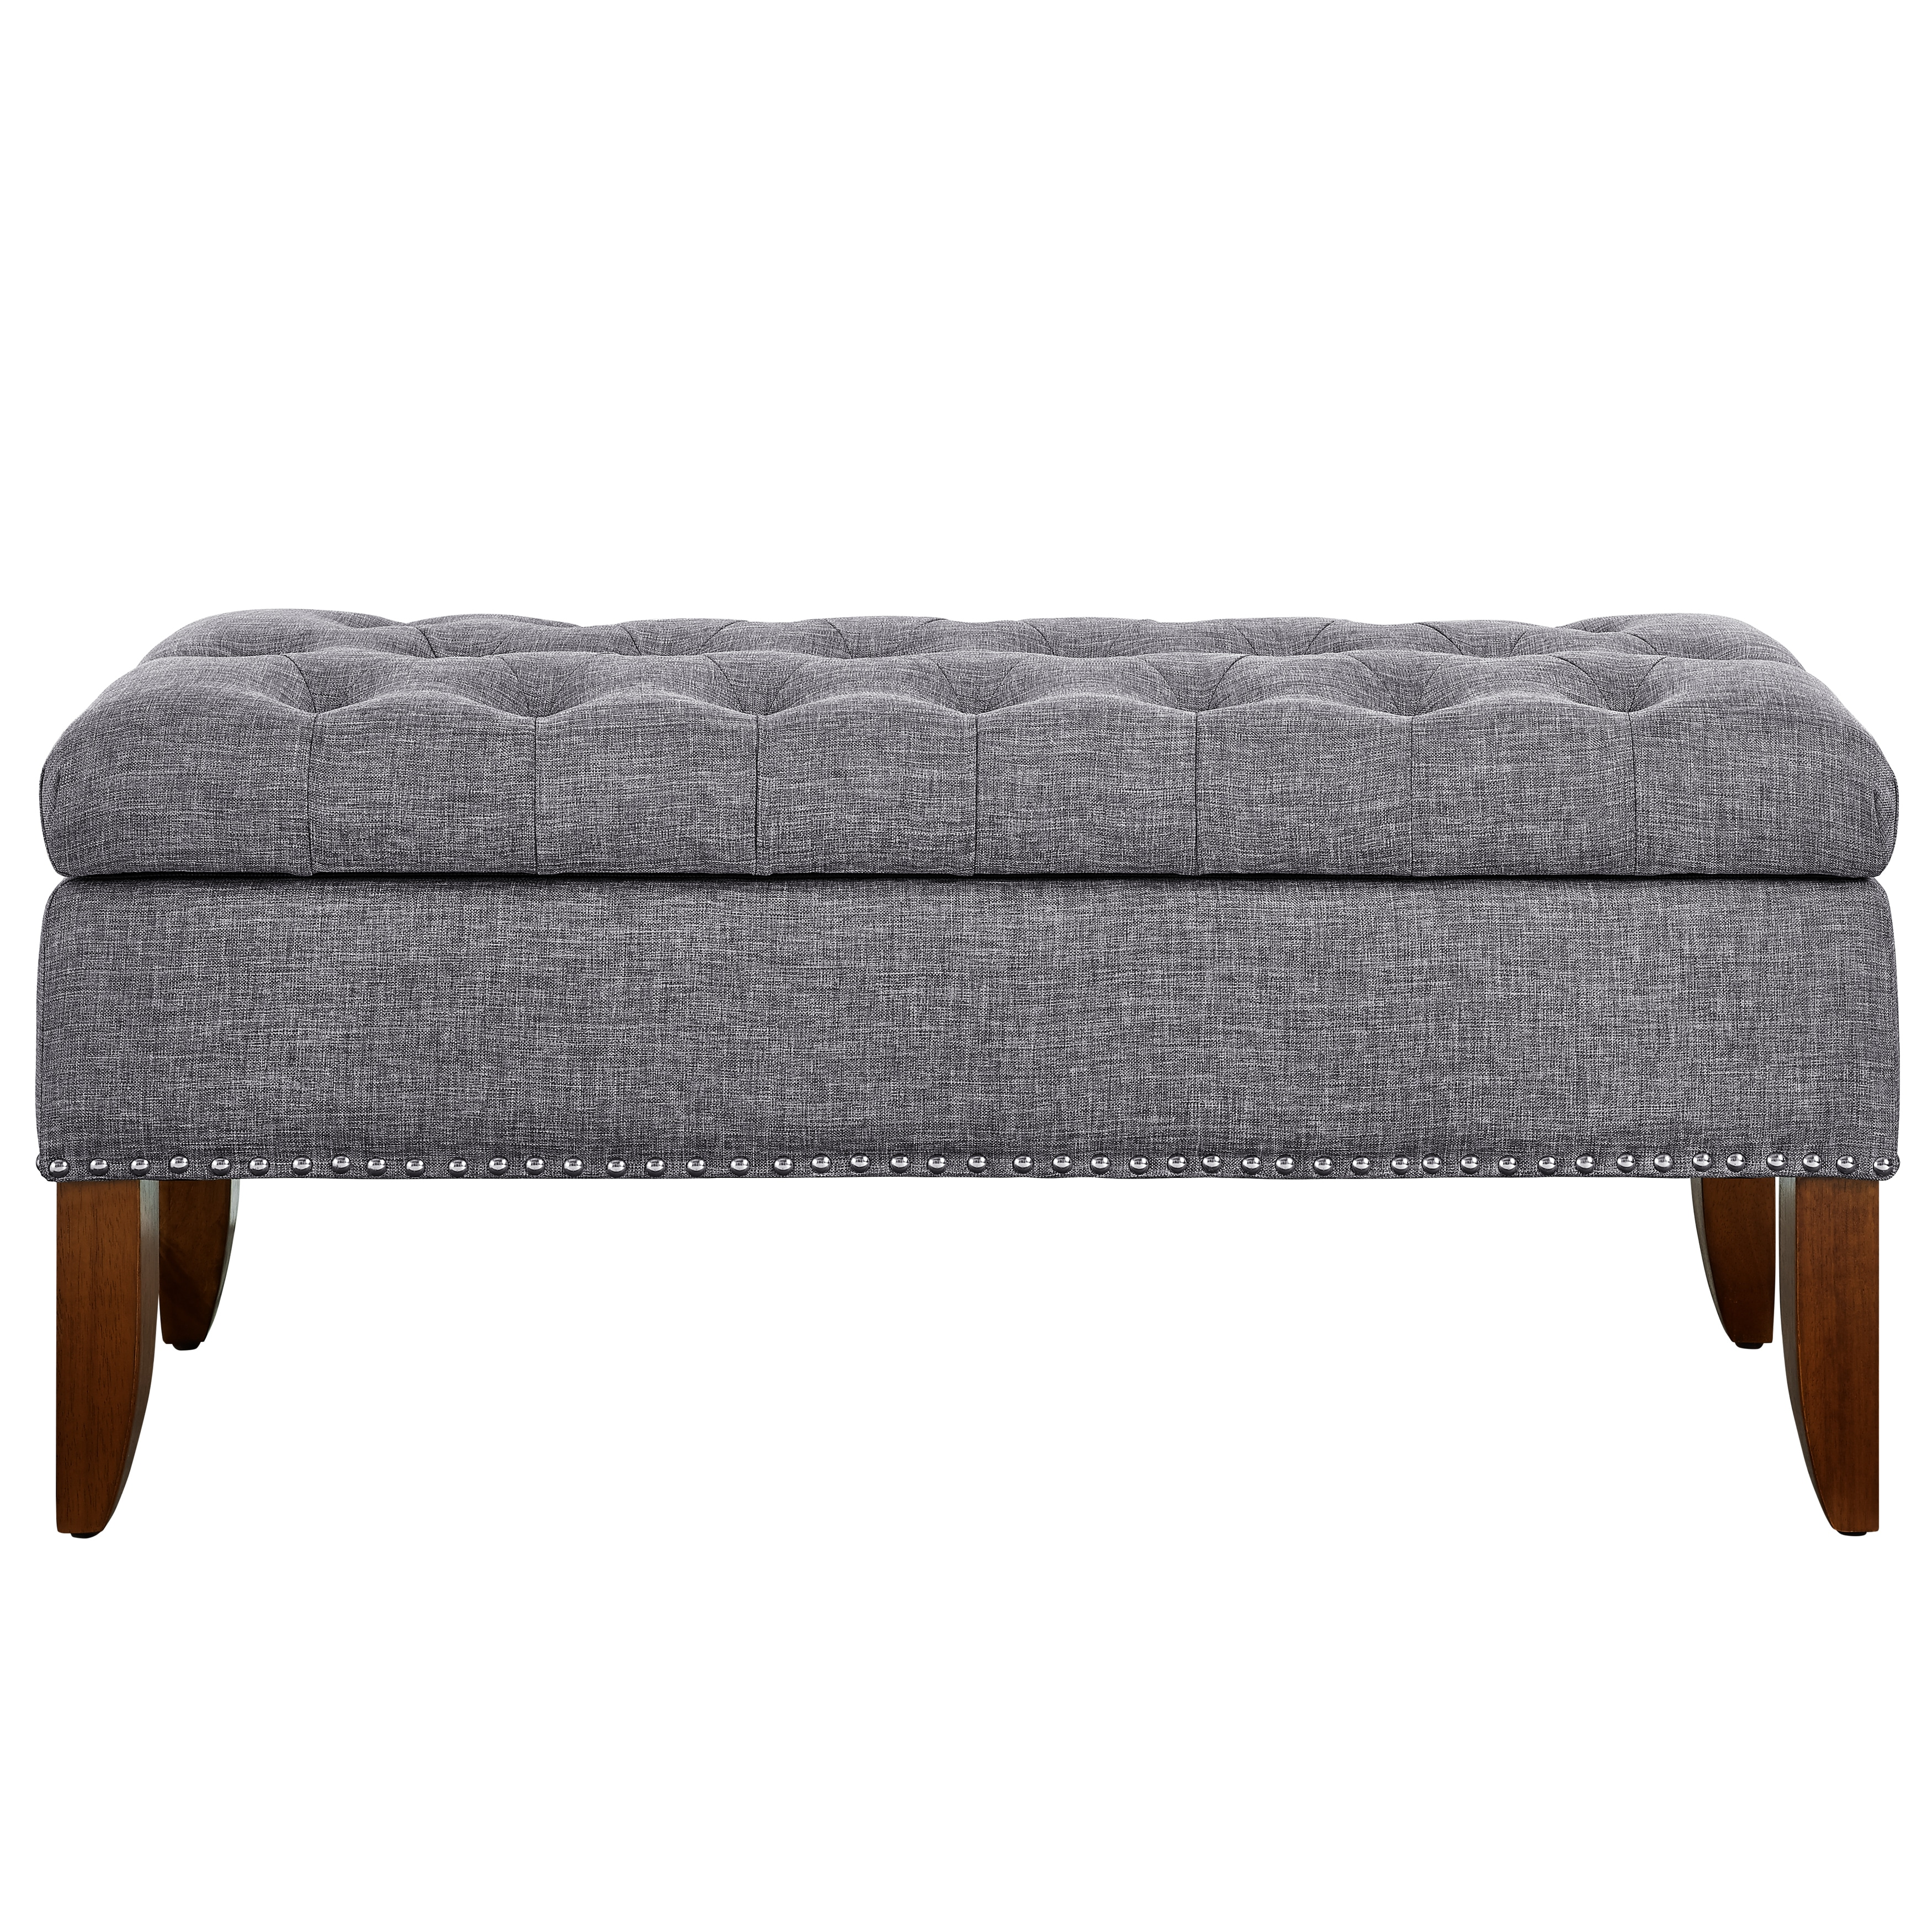 Shop Grey Upholstered Wood Hinged Top Button Tufted Storage Bed